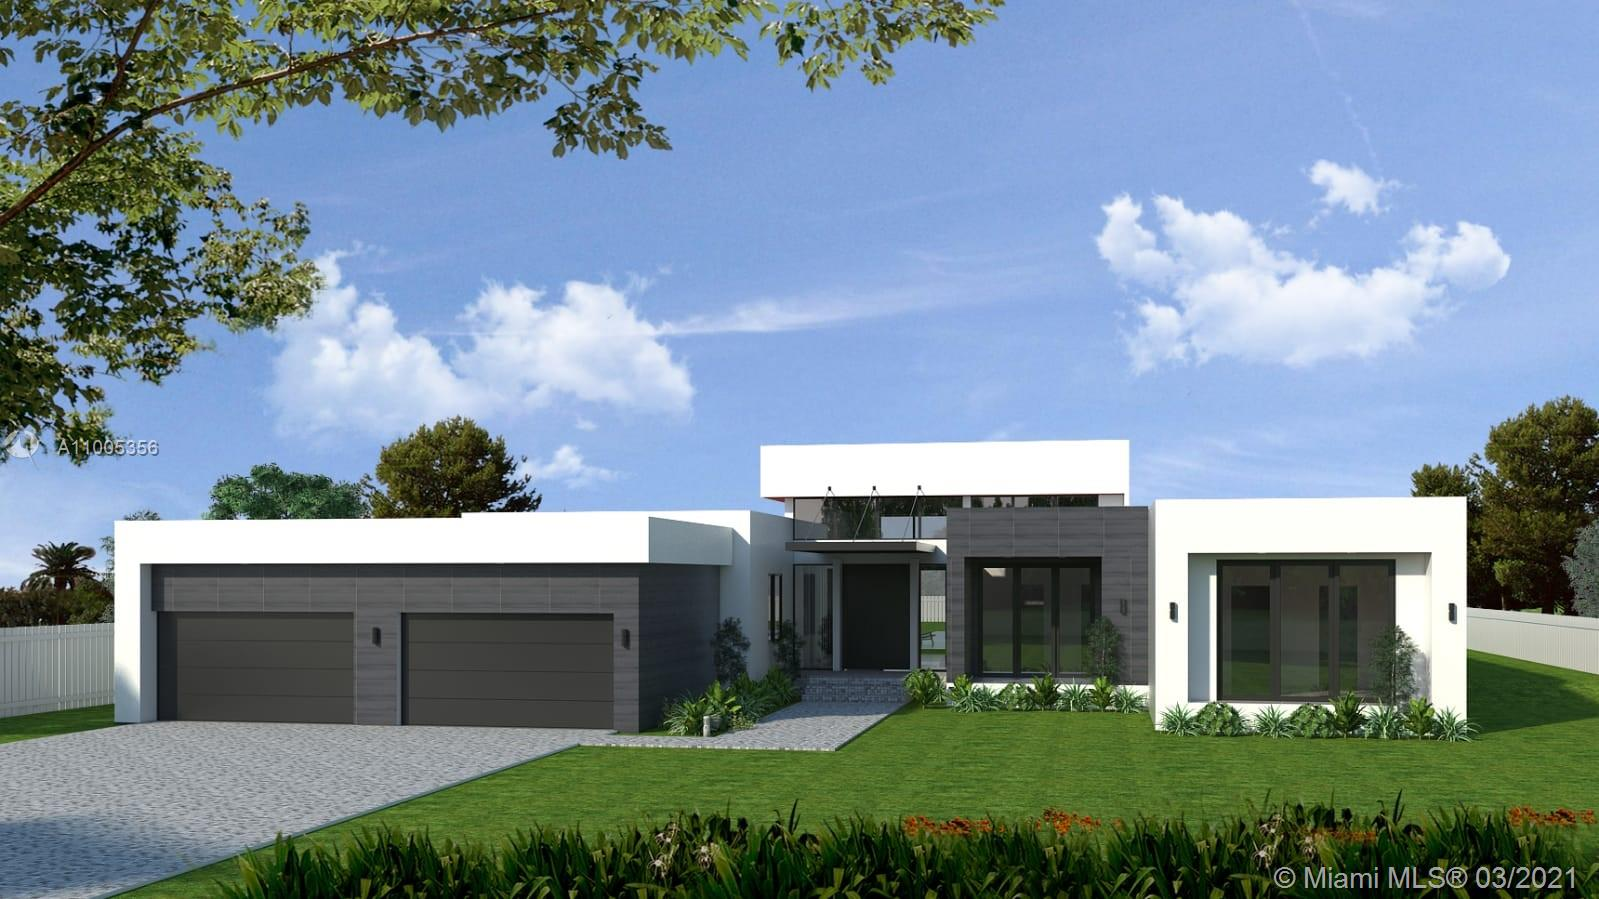 2021 new construction.  Magnificent contemporary home in Weston Florida! Built to the highest standards with impeccable finishes. Buyers get to choose the finishing touches. This home will overlook a beautiful lake and has an outstanding large pool. This property is perfect for a family, with a large variety of A+ schools nearby. This home boasts 6174 SQFT (4624 SQFT under air) large sized bedrooms. This widely spread-out home is the perfect design for an indoor/outdoor feel. This home will also have high ceilings throughout the living area. A large outdoor cabana bathroom, built-in grill and surround sound system through the backyard. The master bedroom will have a magnificent pool/lake view from your bed and will have a large four-car garage plus extra room for storage. Contact asap!